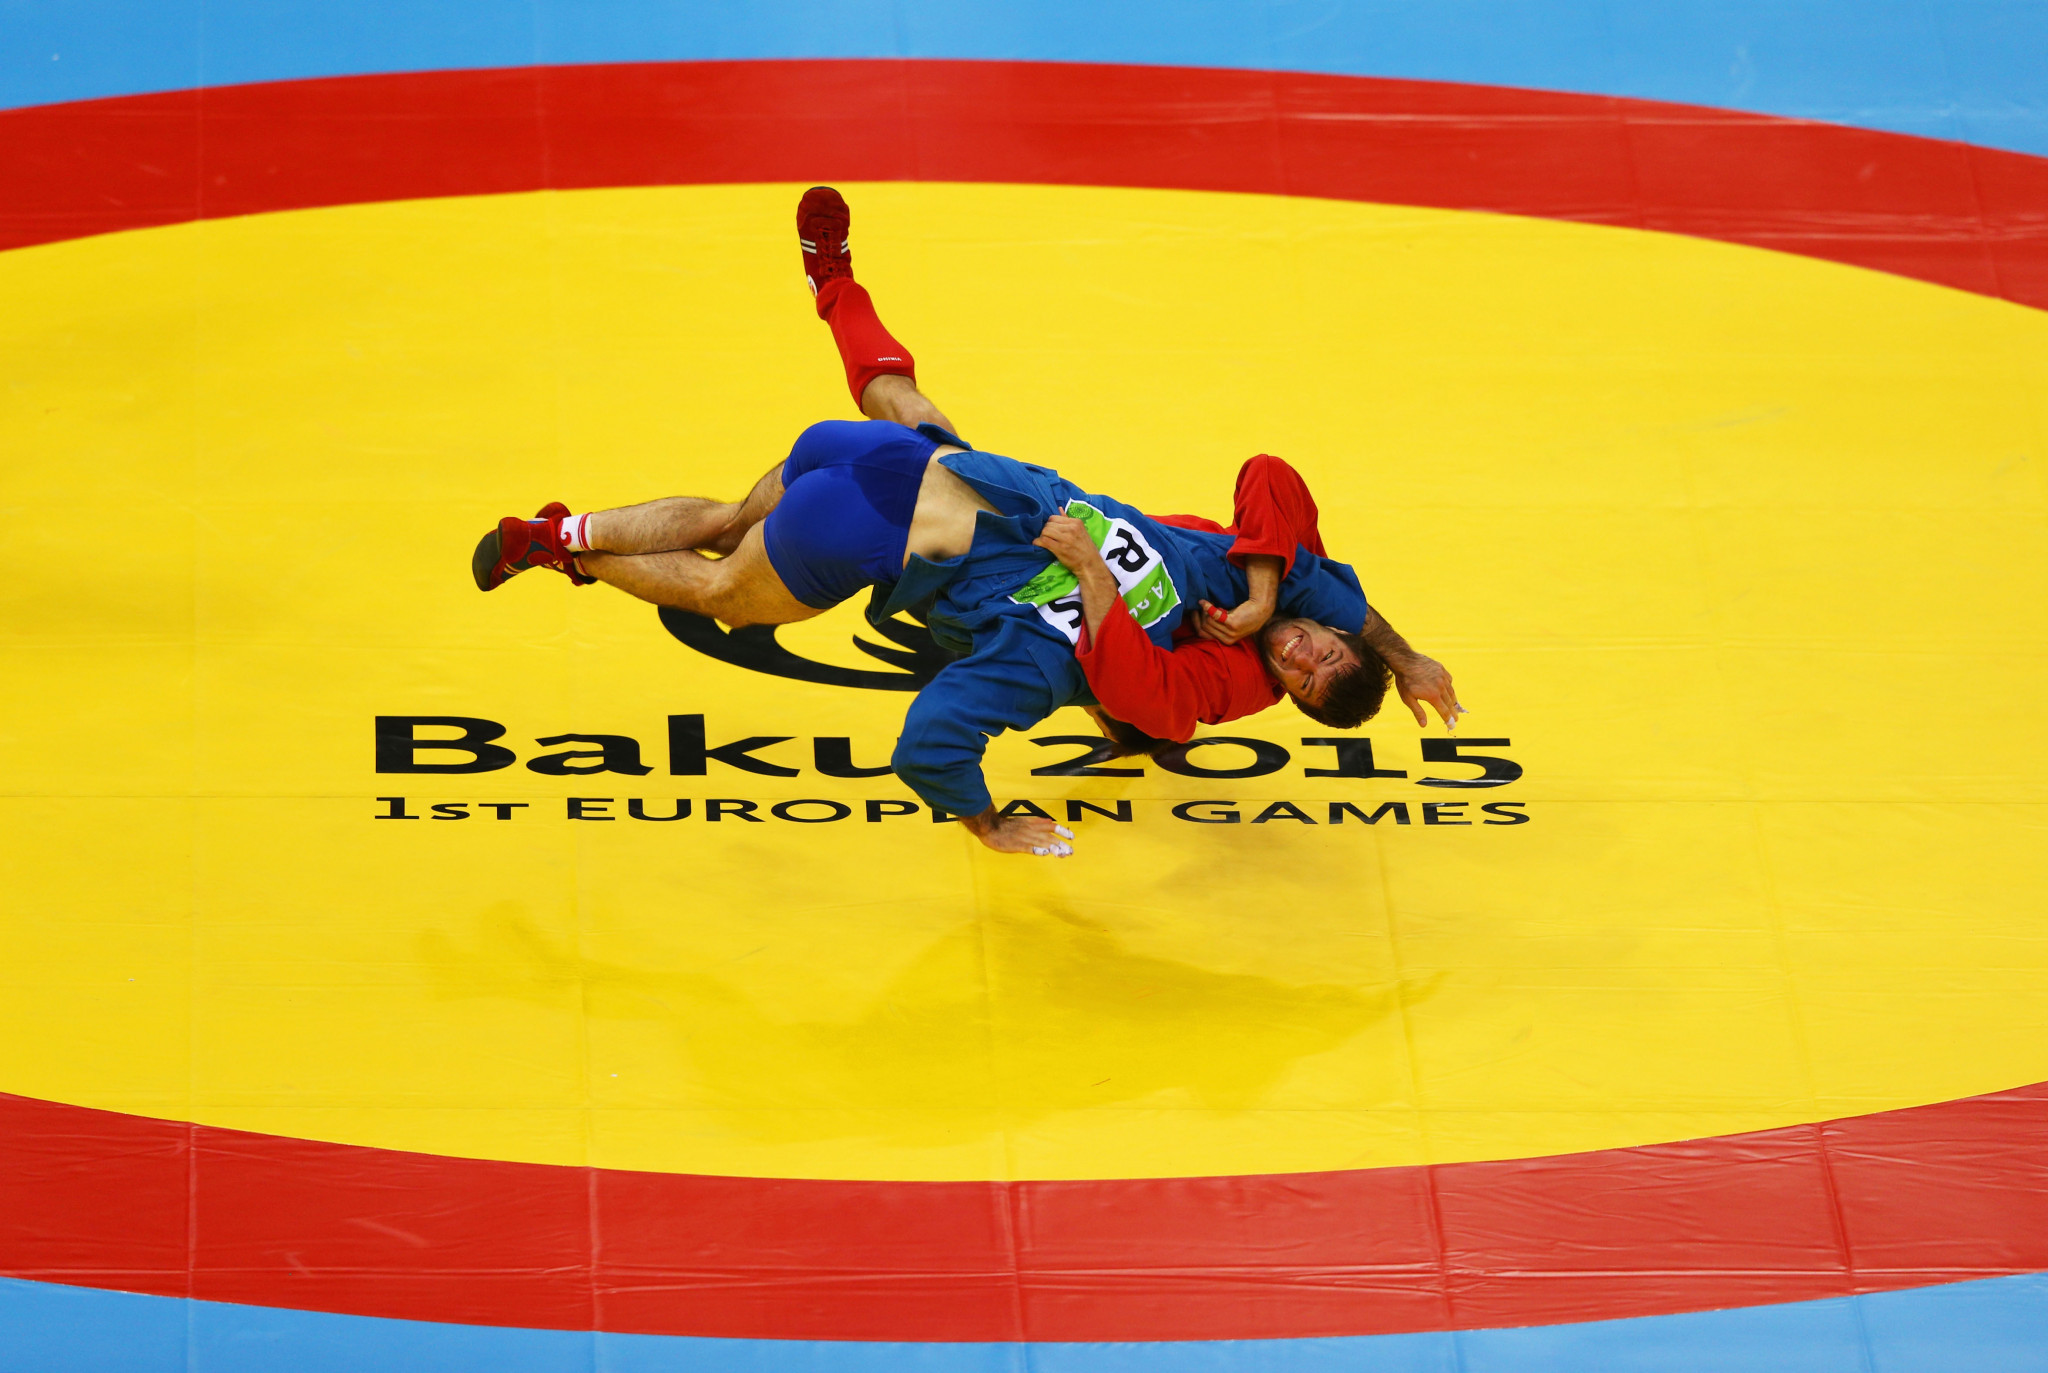 Sambo was part of the programme when Baku hosted the first European Games in 2015 ©Getty Images